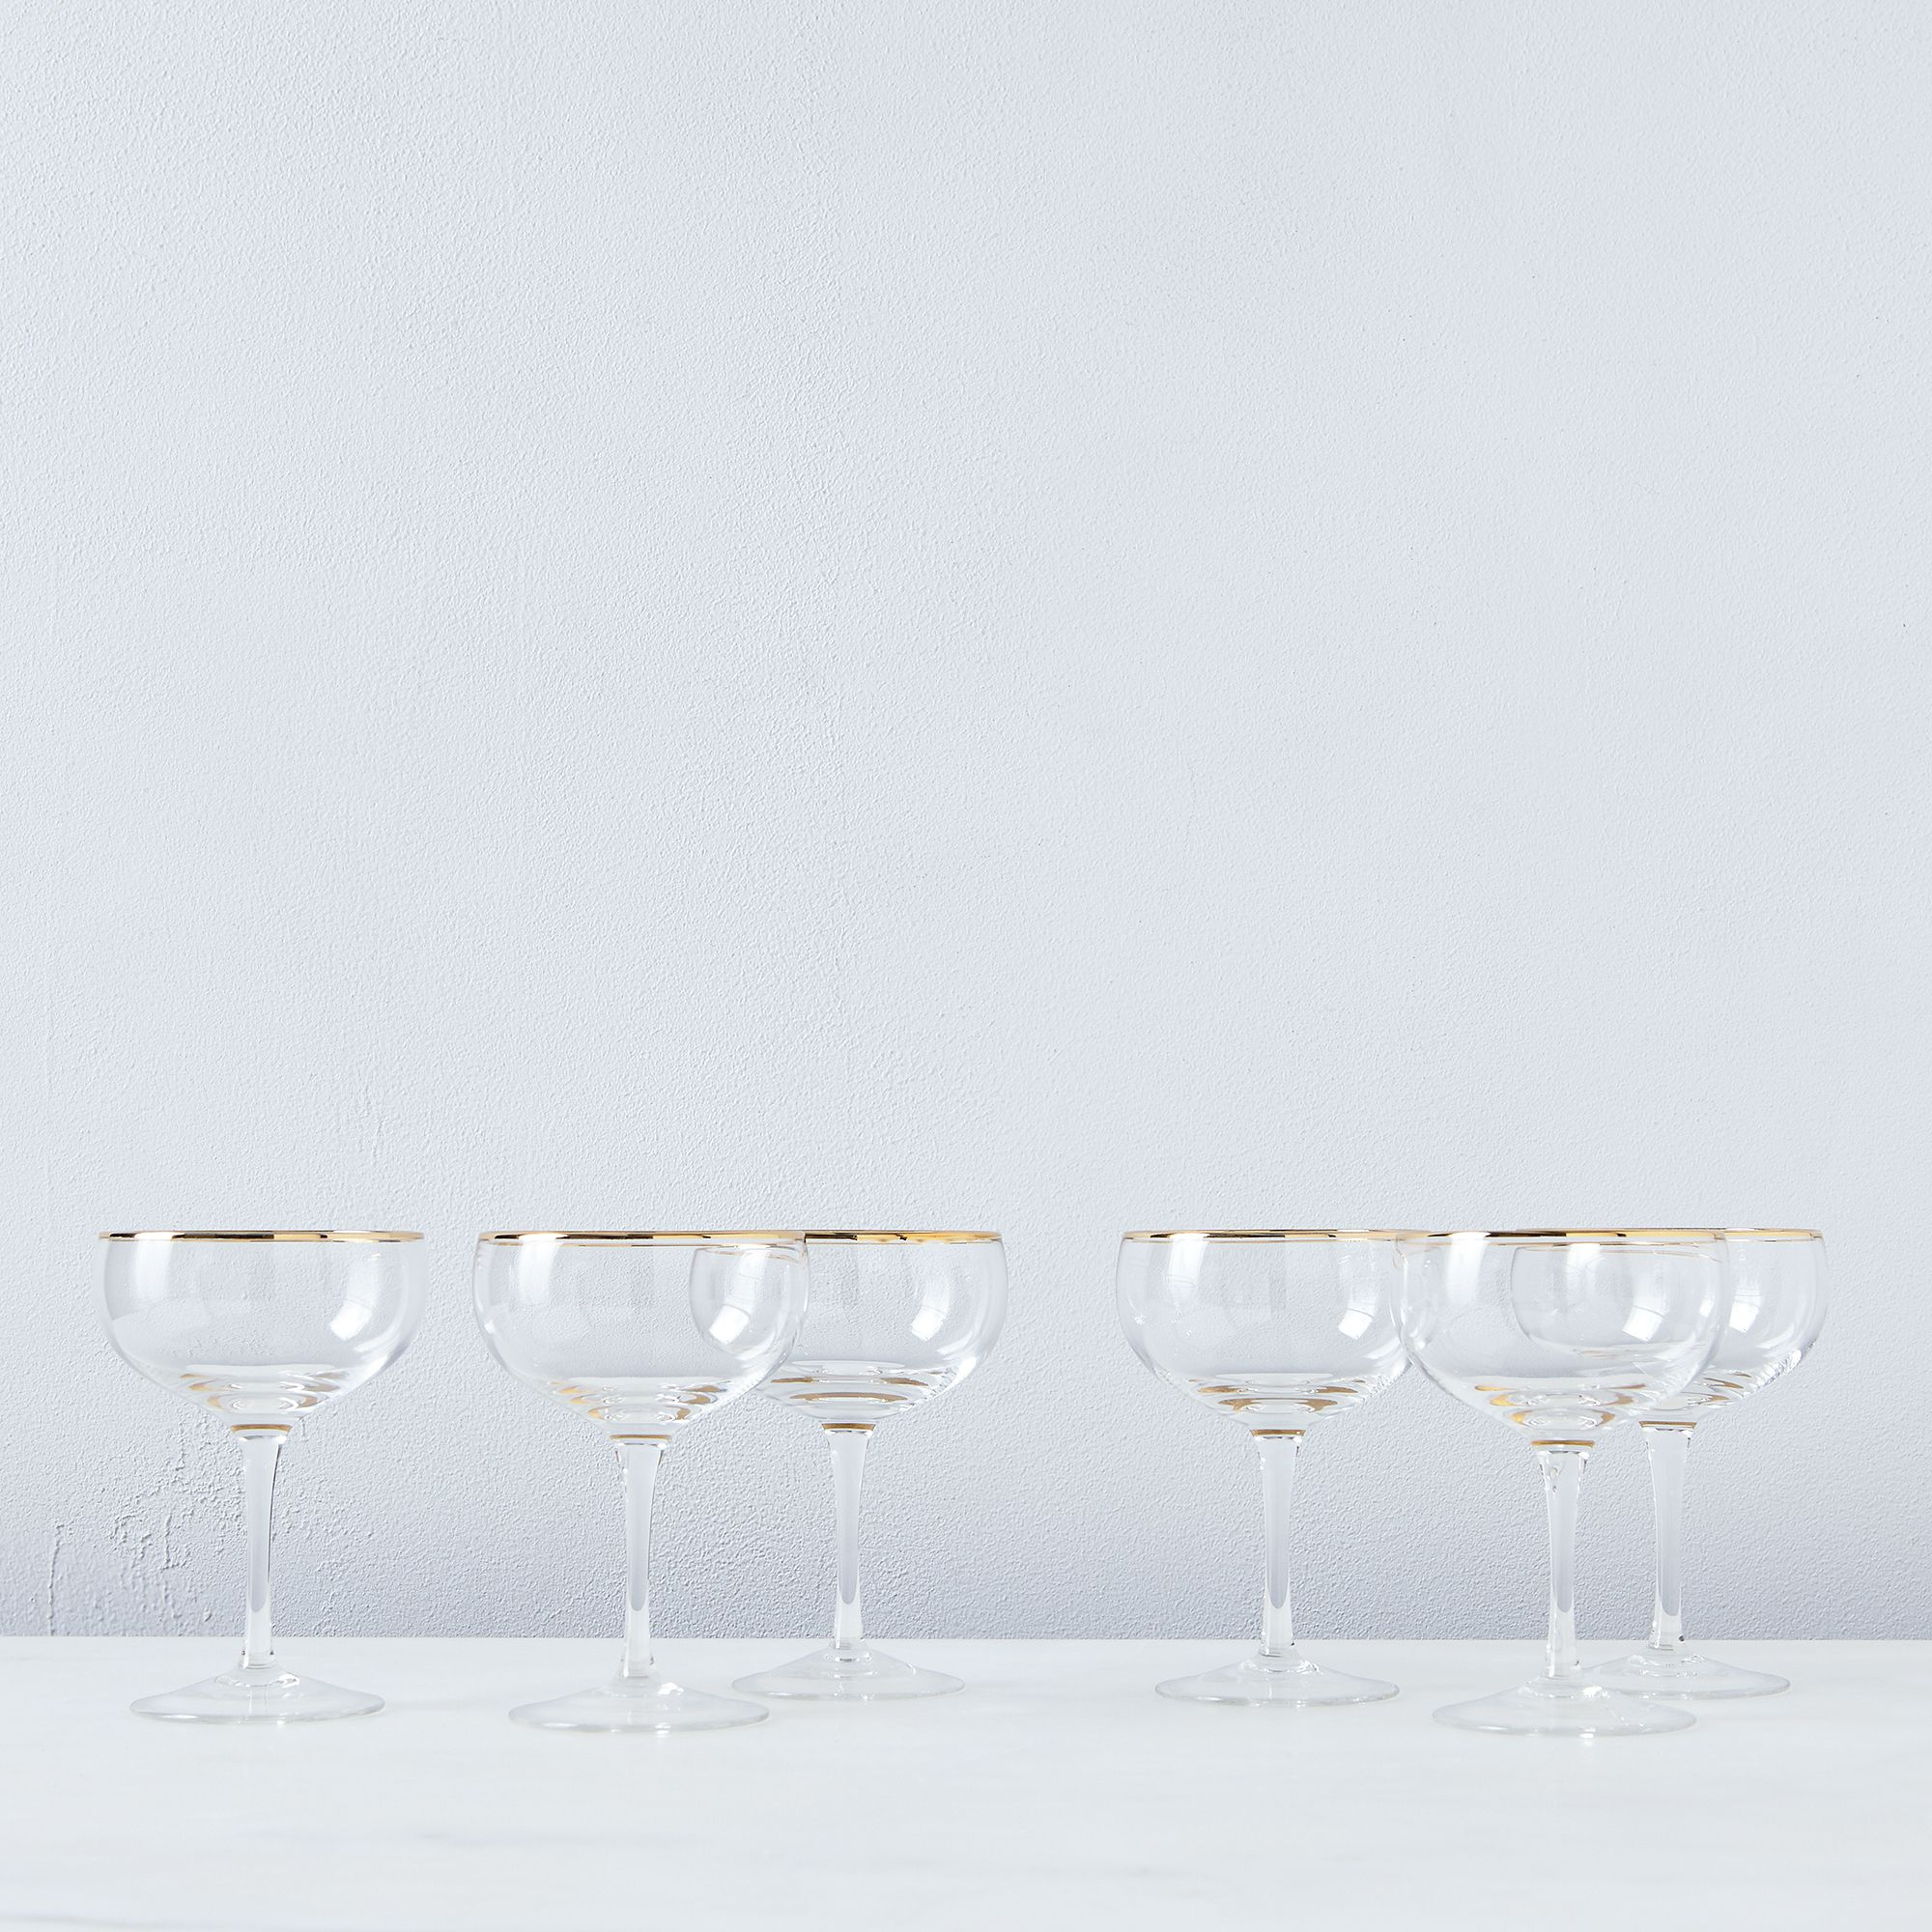 758a3b0f 6709 44a0 822c f26e16a2c538  2016 0617 cocktail kingdom metallic rimmed champagnes coupes gold rim silo rocky luten 011